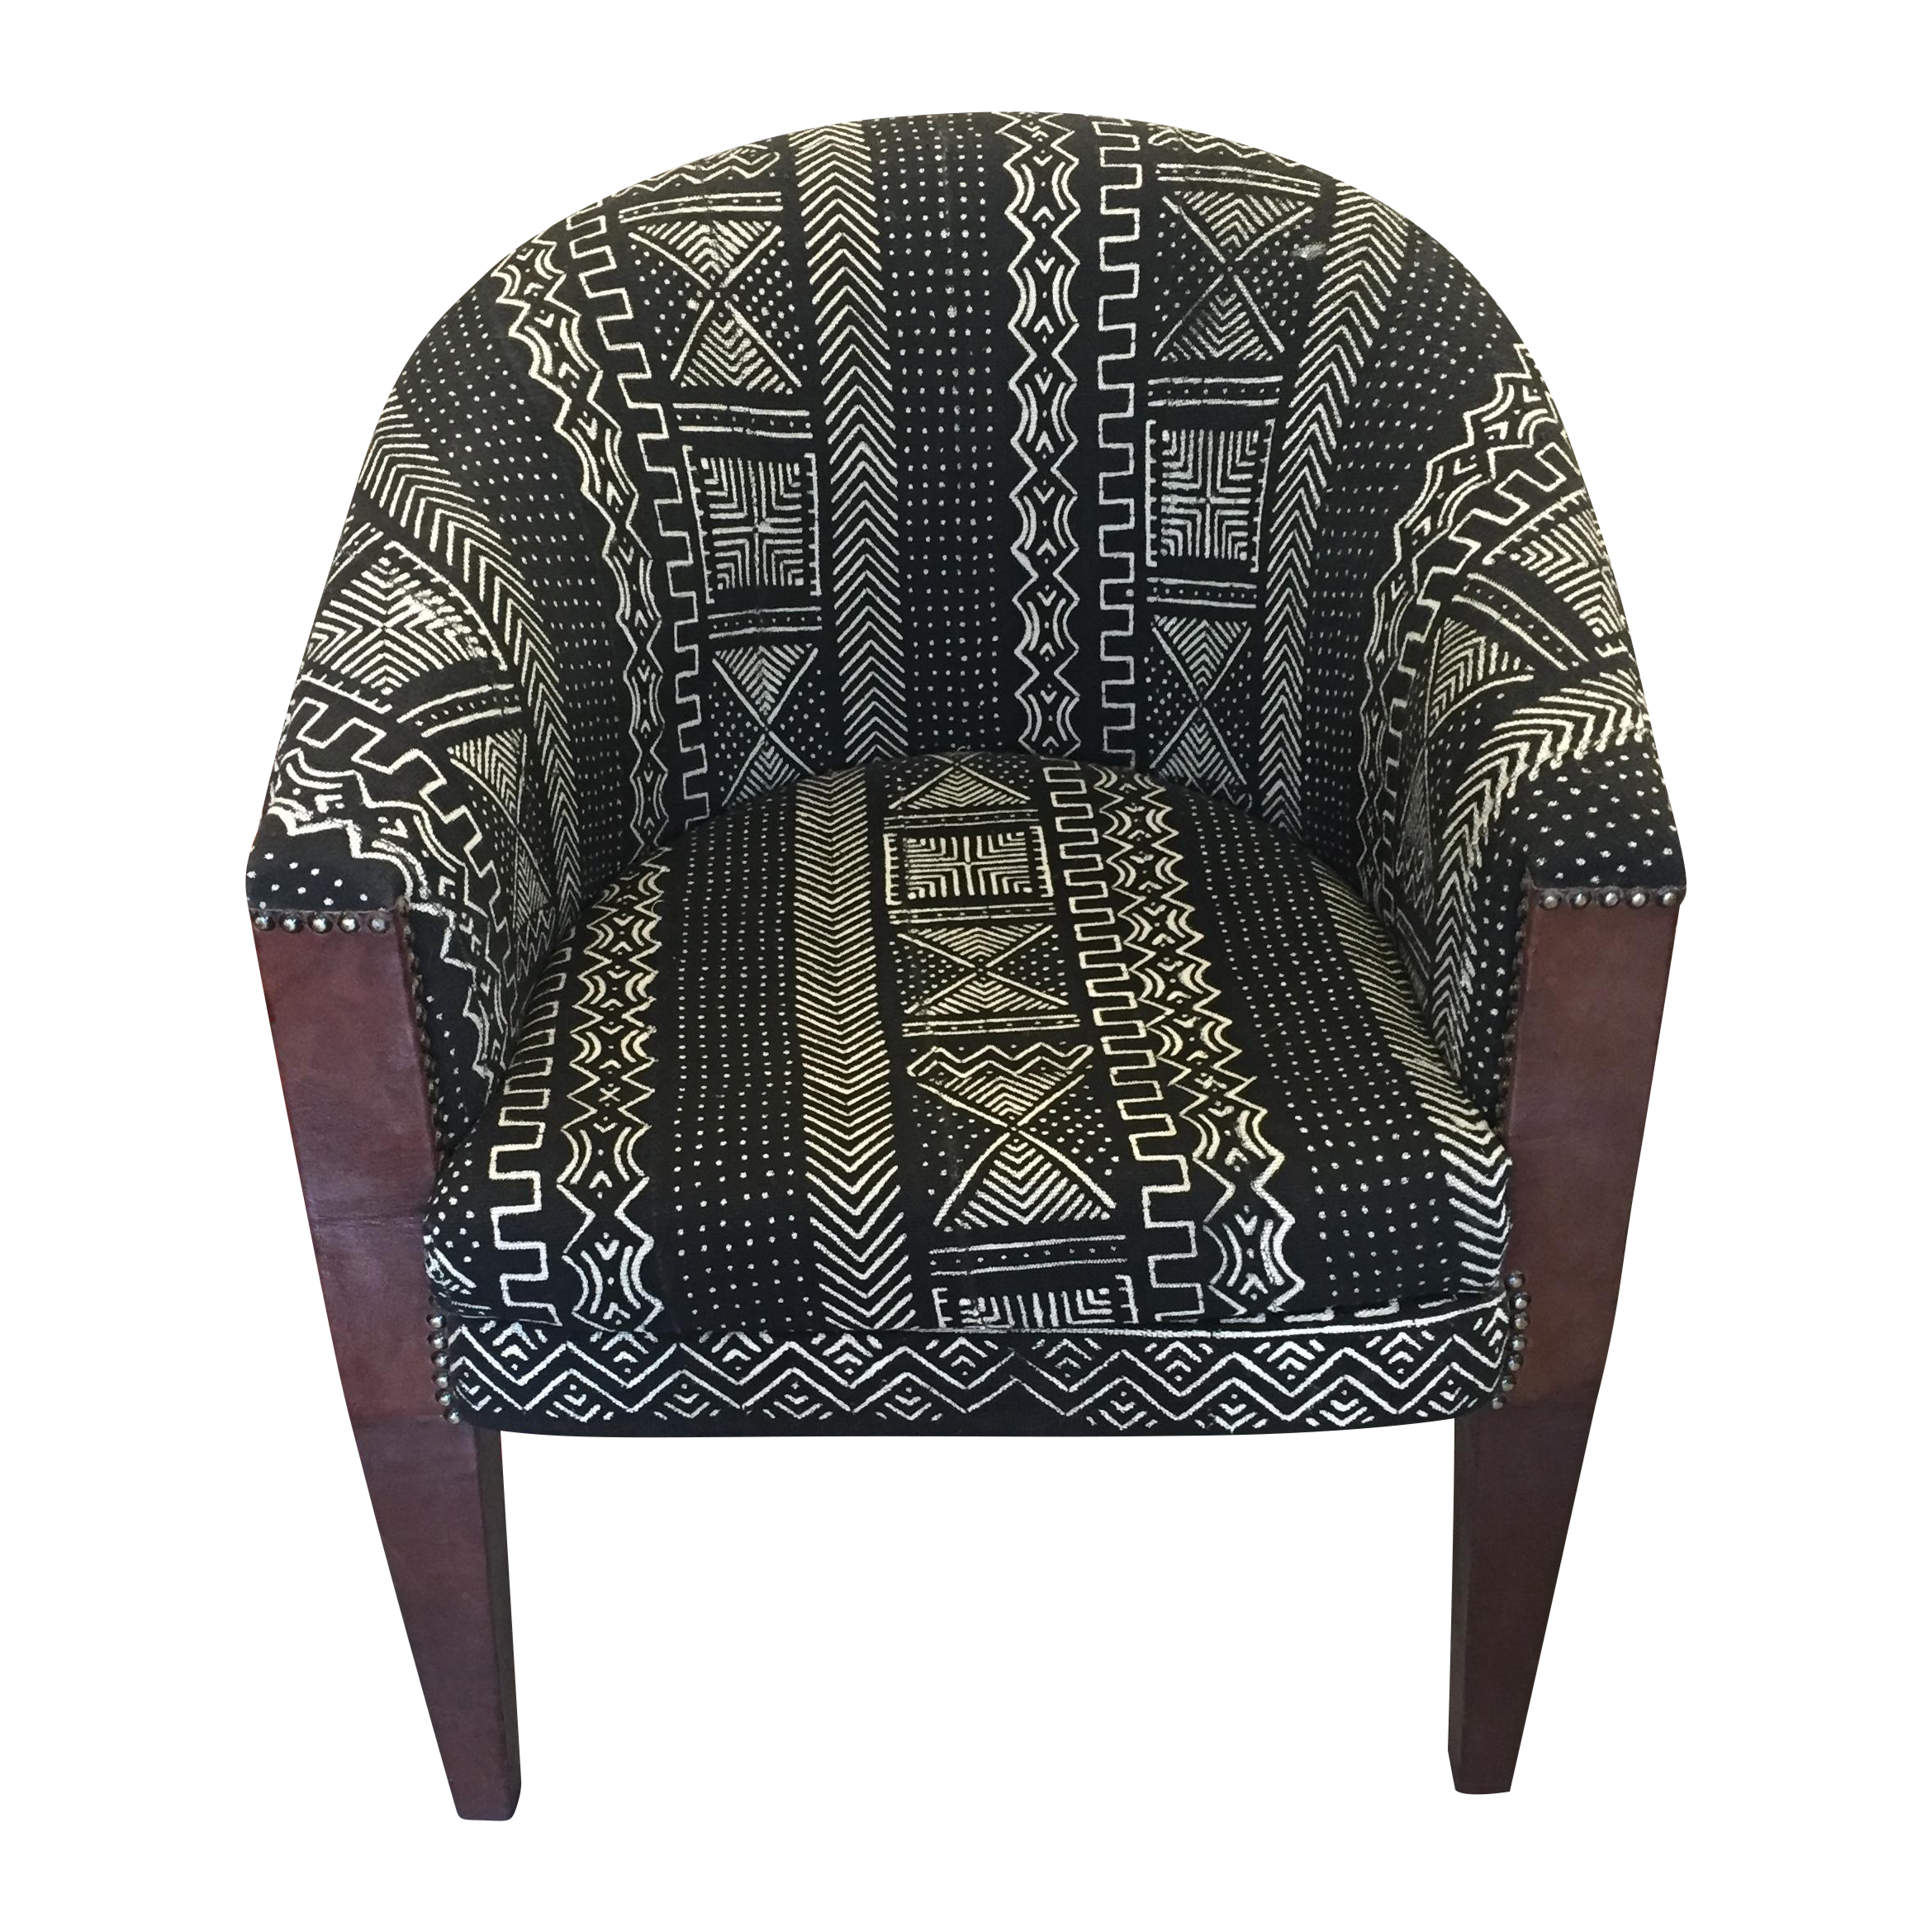 Superior $790 Black And White North African Mud Cloth Chair With Leather Wrapped  Wood, Studded Legs